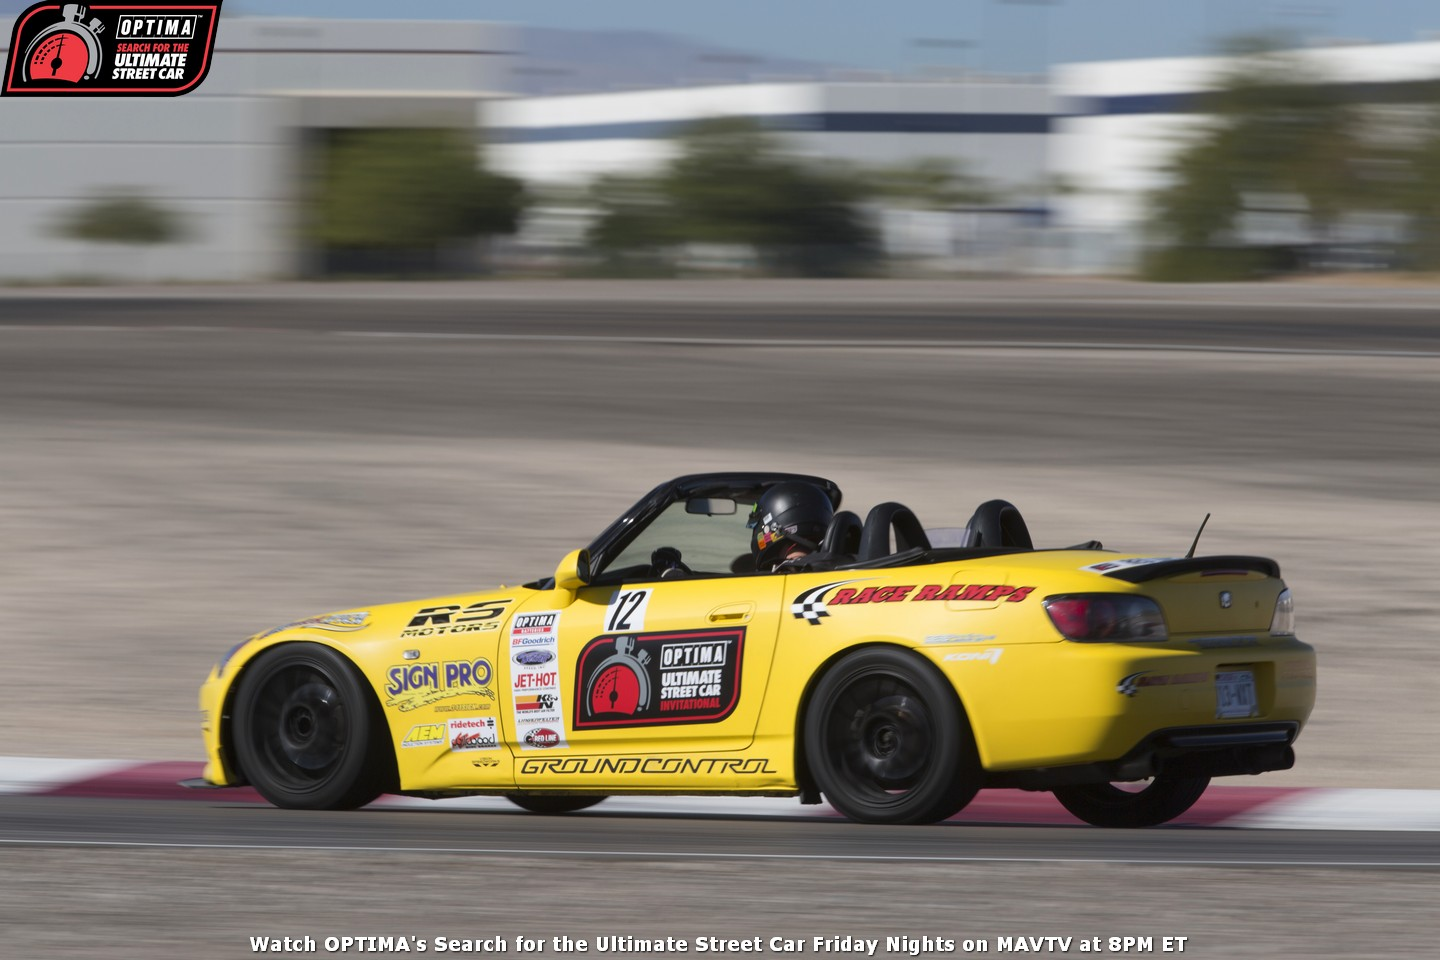 p-Andy-Smedegard-2001-Honda-S2000-OPTIMA-Ultimate-Street-Car-Invitational-2014-BFGoodrich-Hot-Lap-Challenge_25.jpg